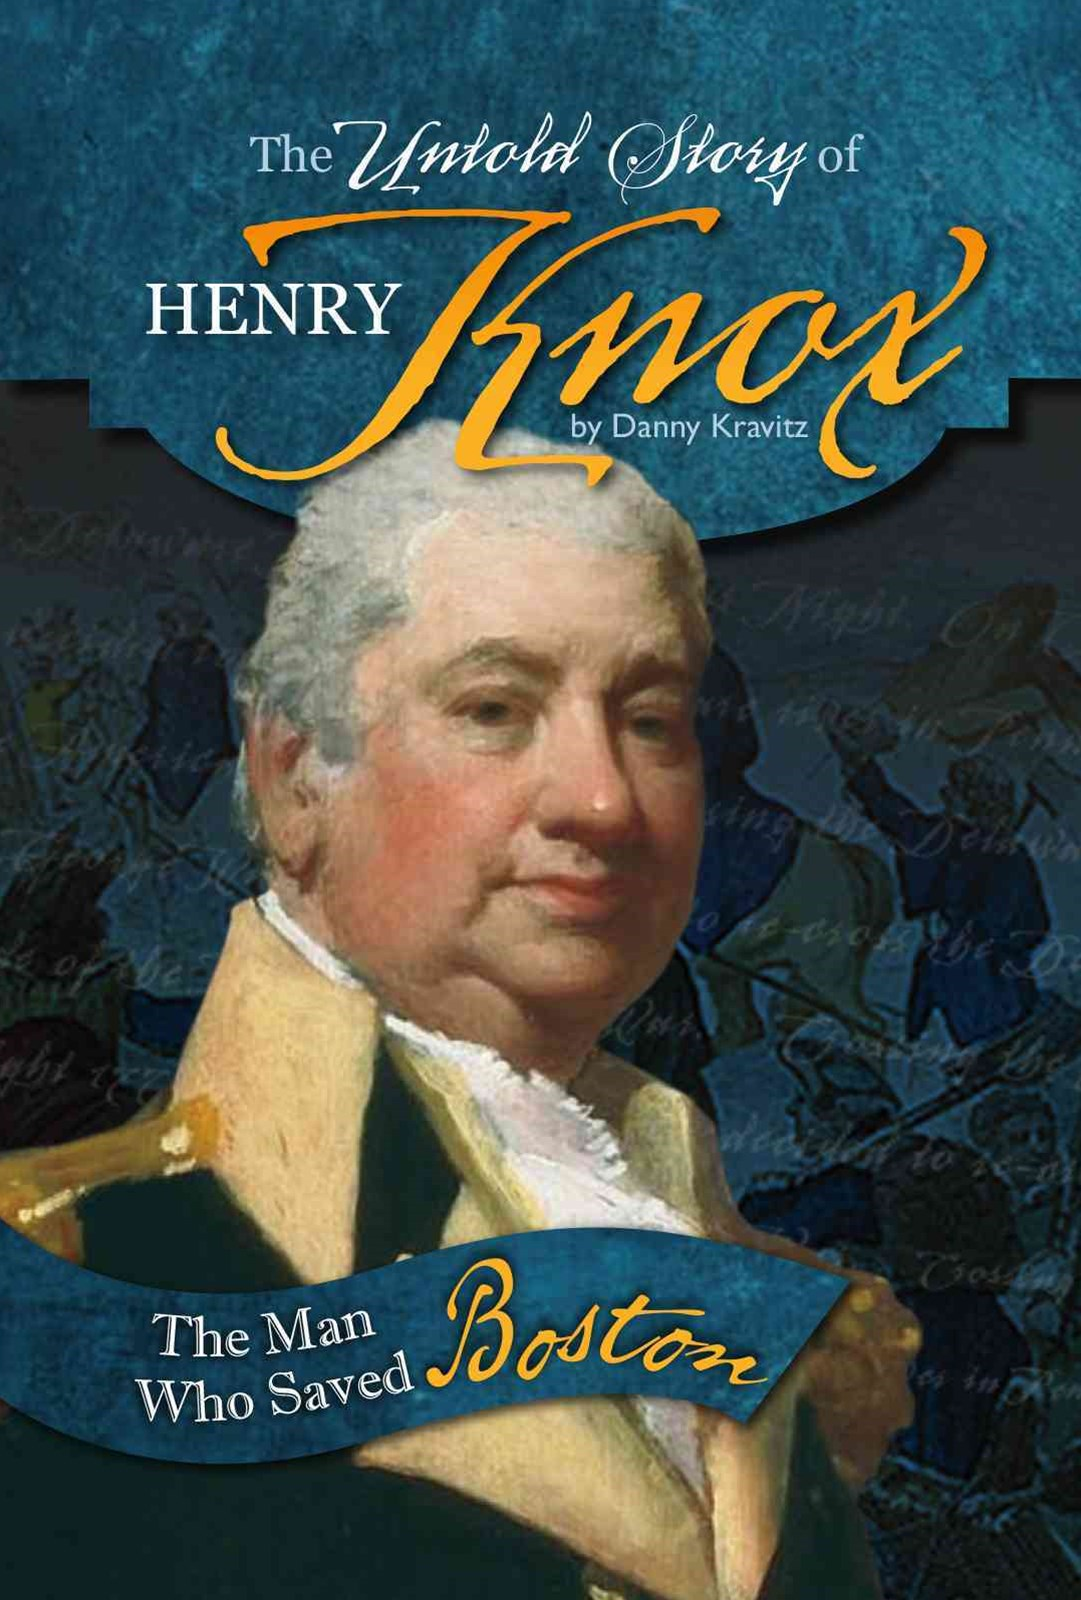 The Untold Story of Henry Knox